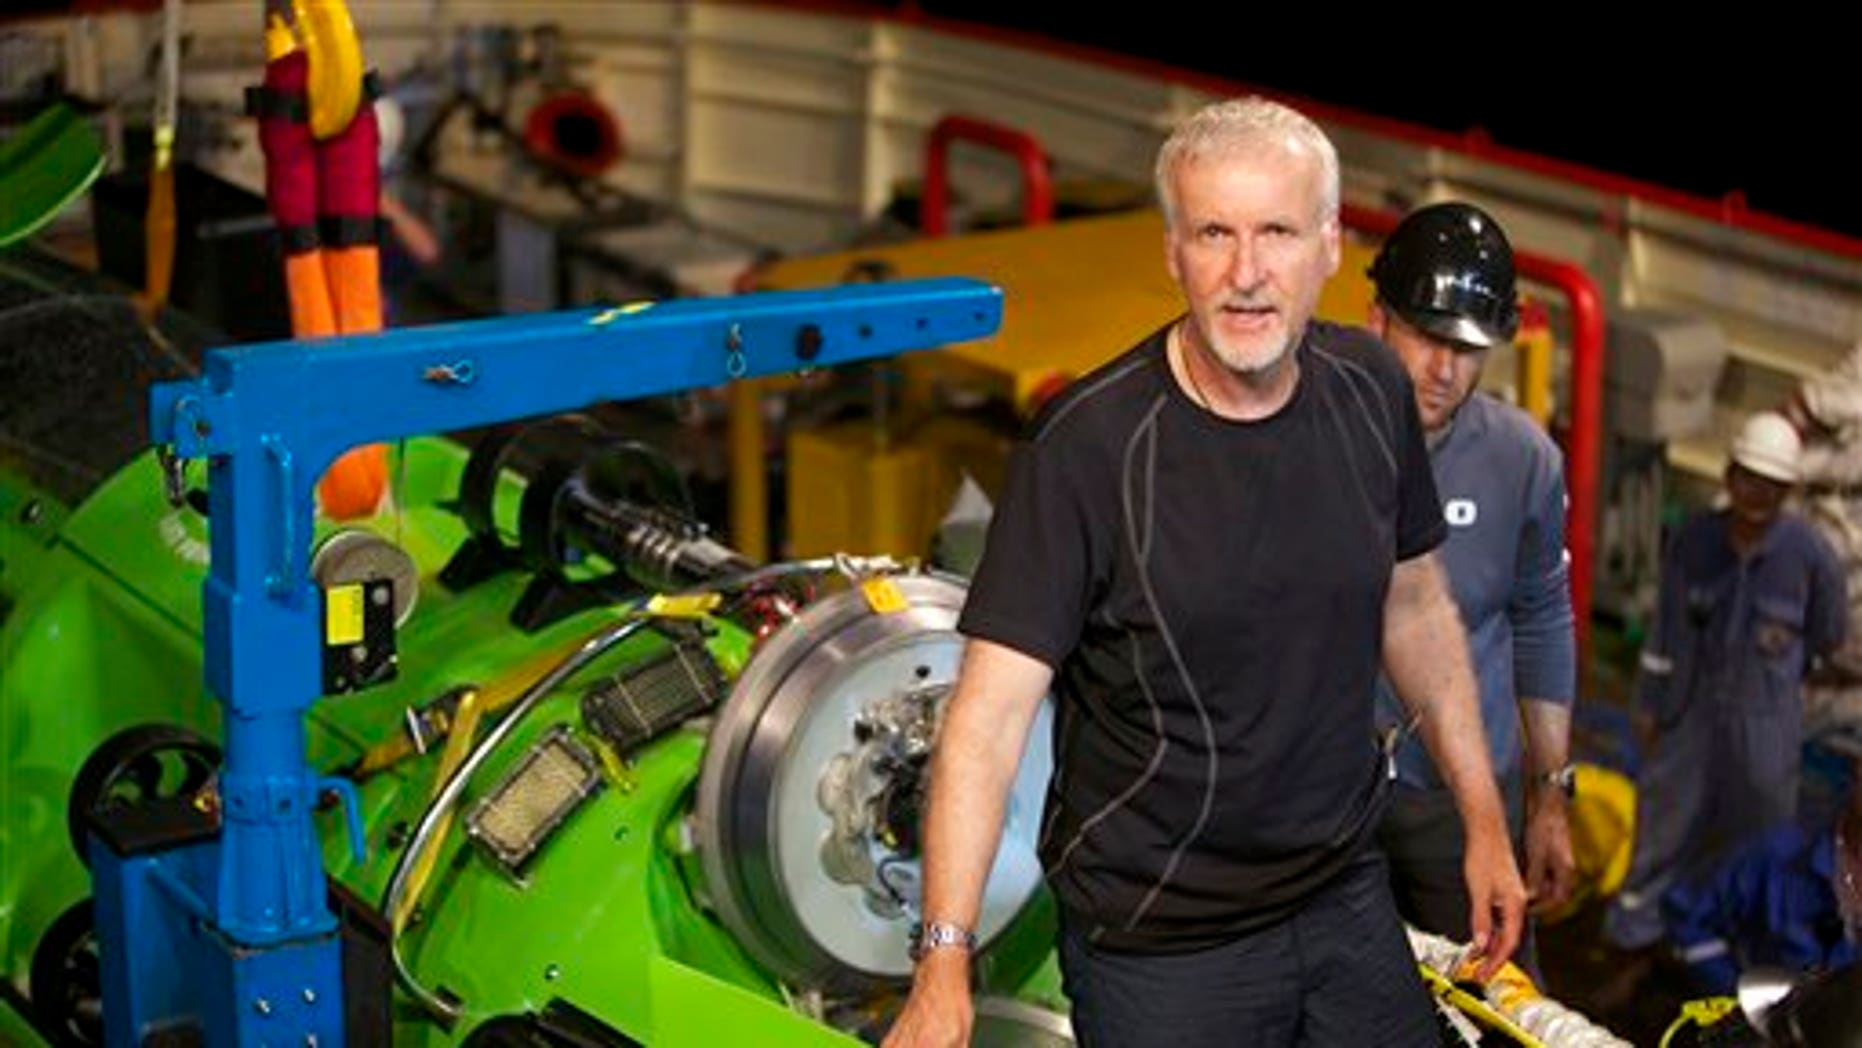 This February 2012 photo, provided by National Geographic, shows explorer and filmmaker James Cameron emerging from the hatch of DEEPSEA CHALLENGER during testing of the submersible in Jervis Bay, south of Sydney, Australia.